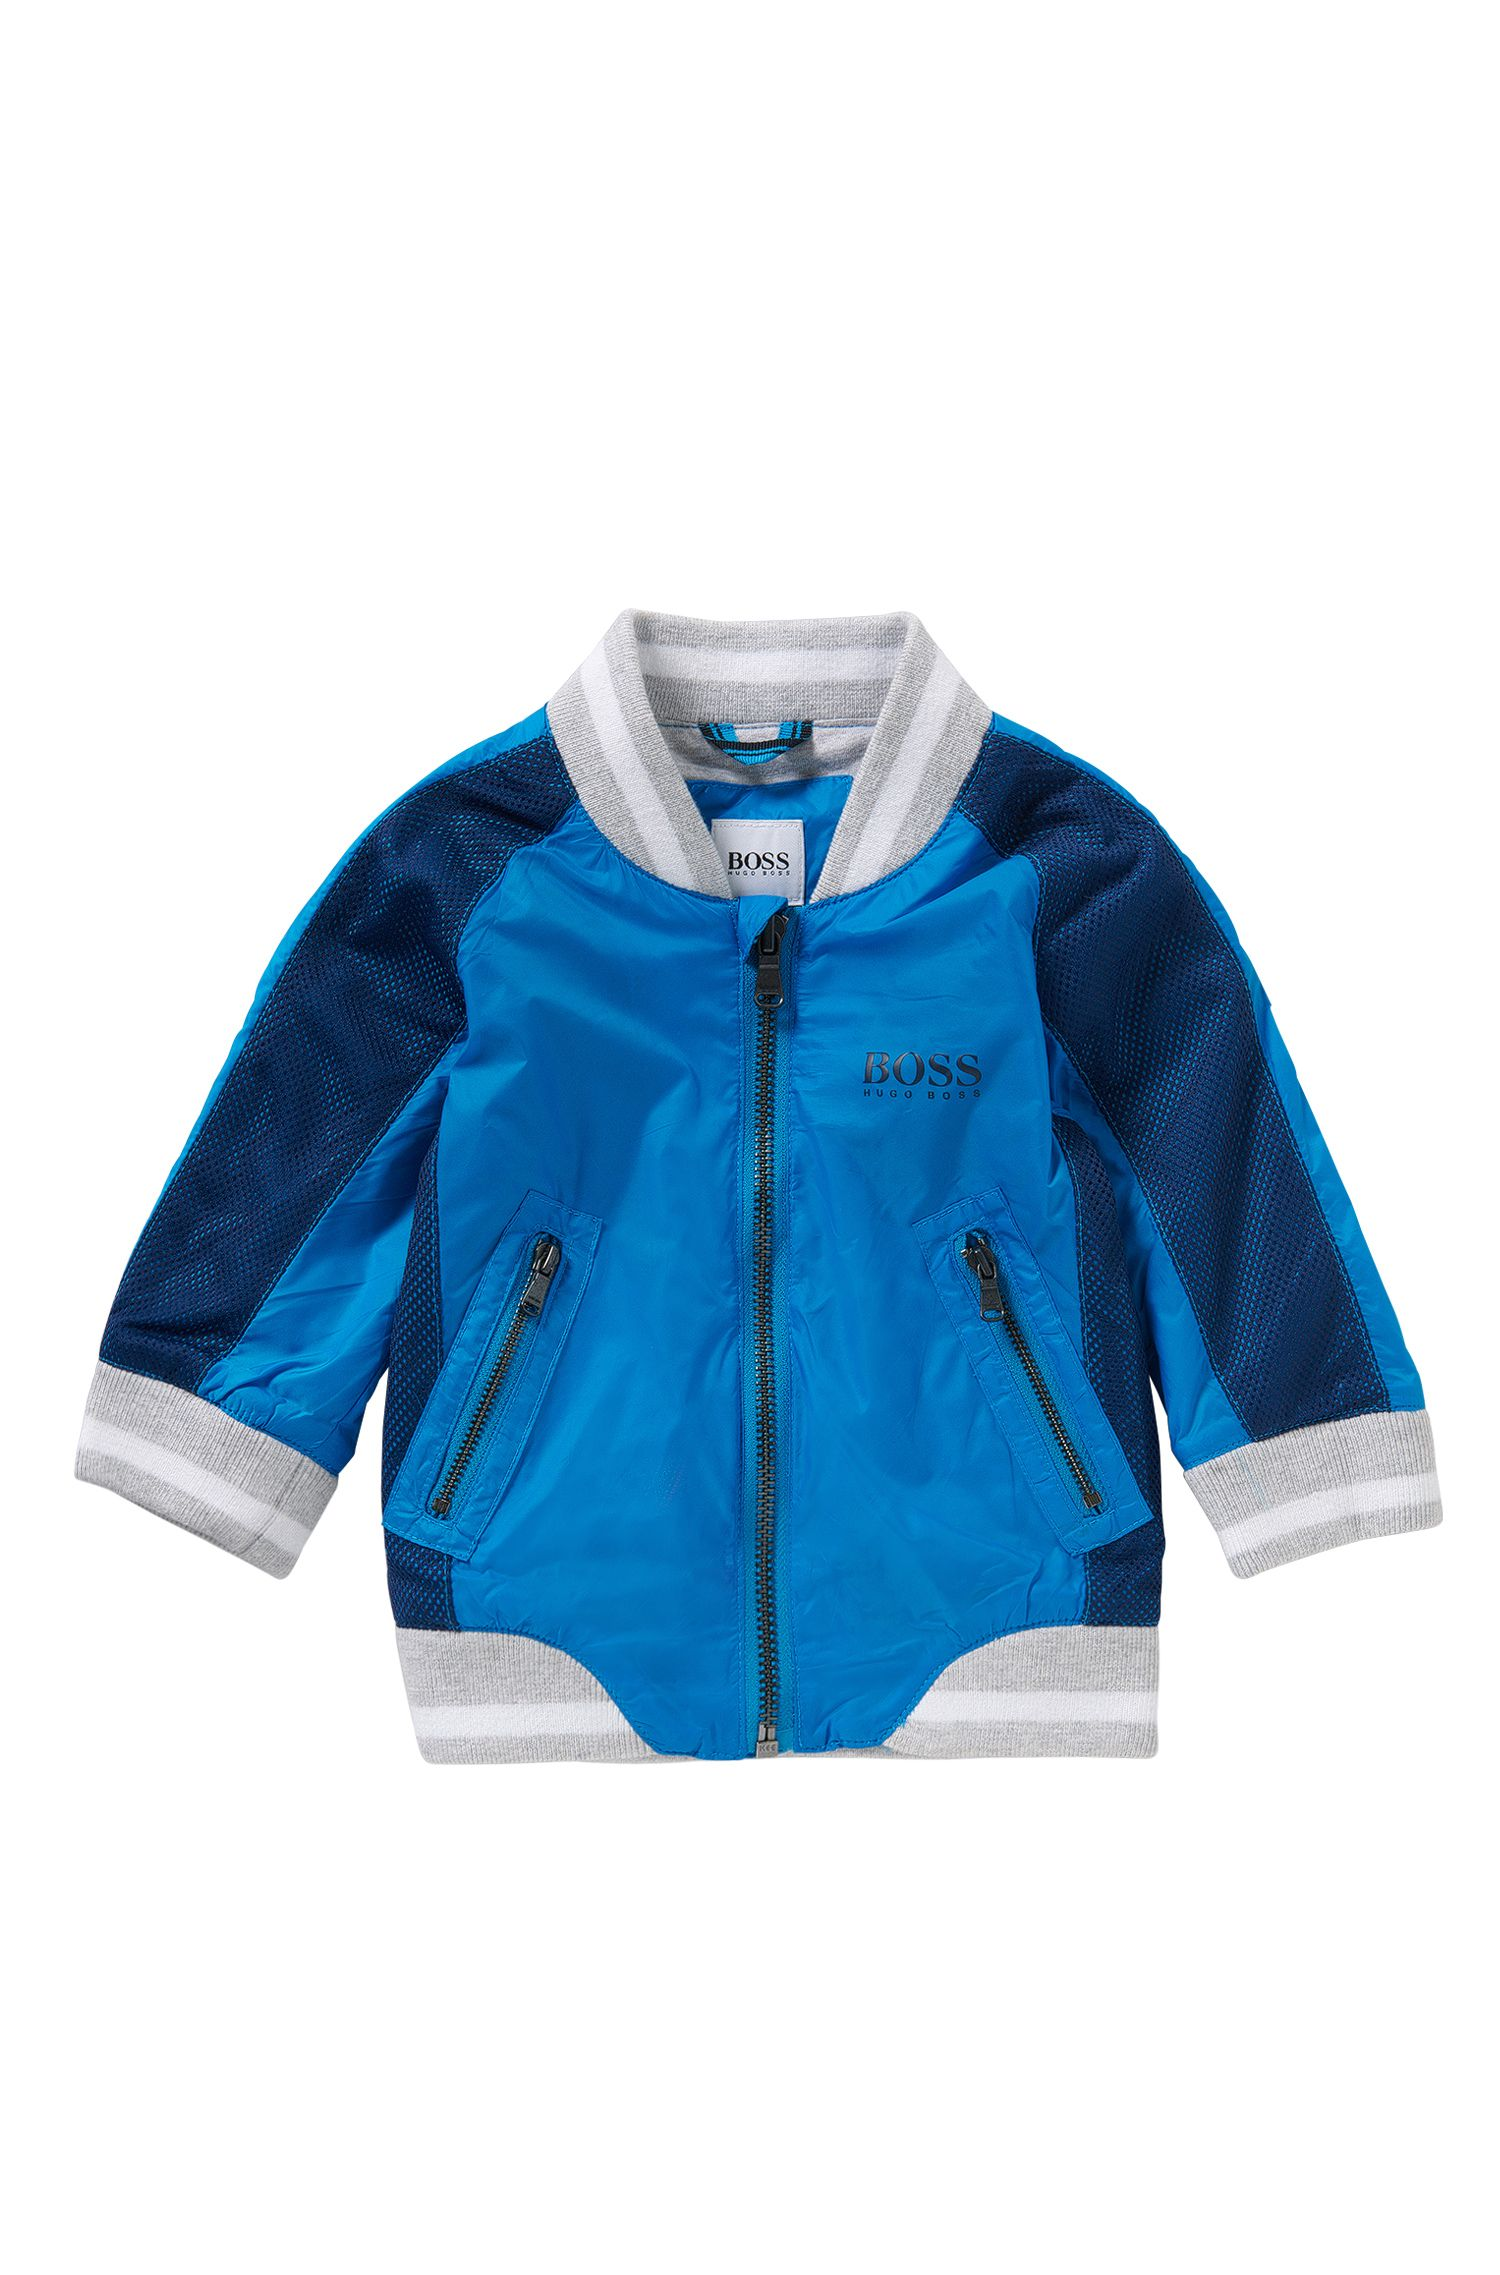 Babyjas in collegestijl: 'J06135'